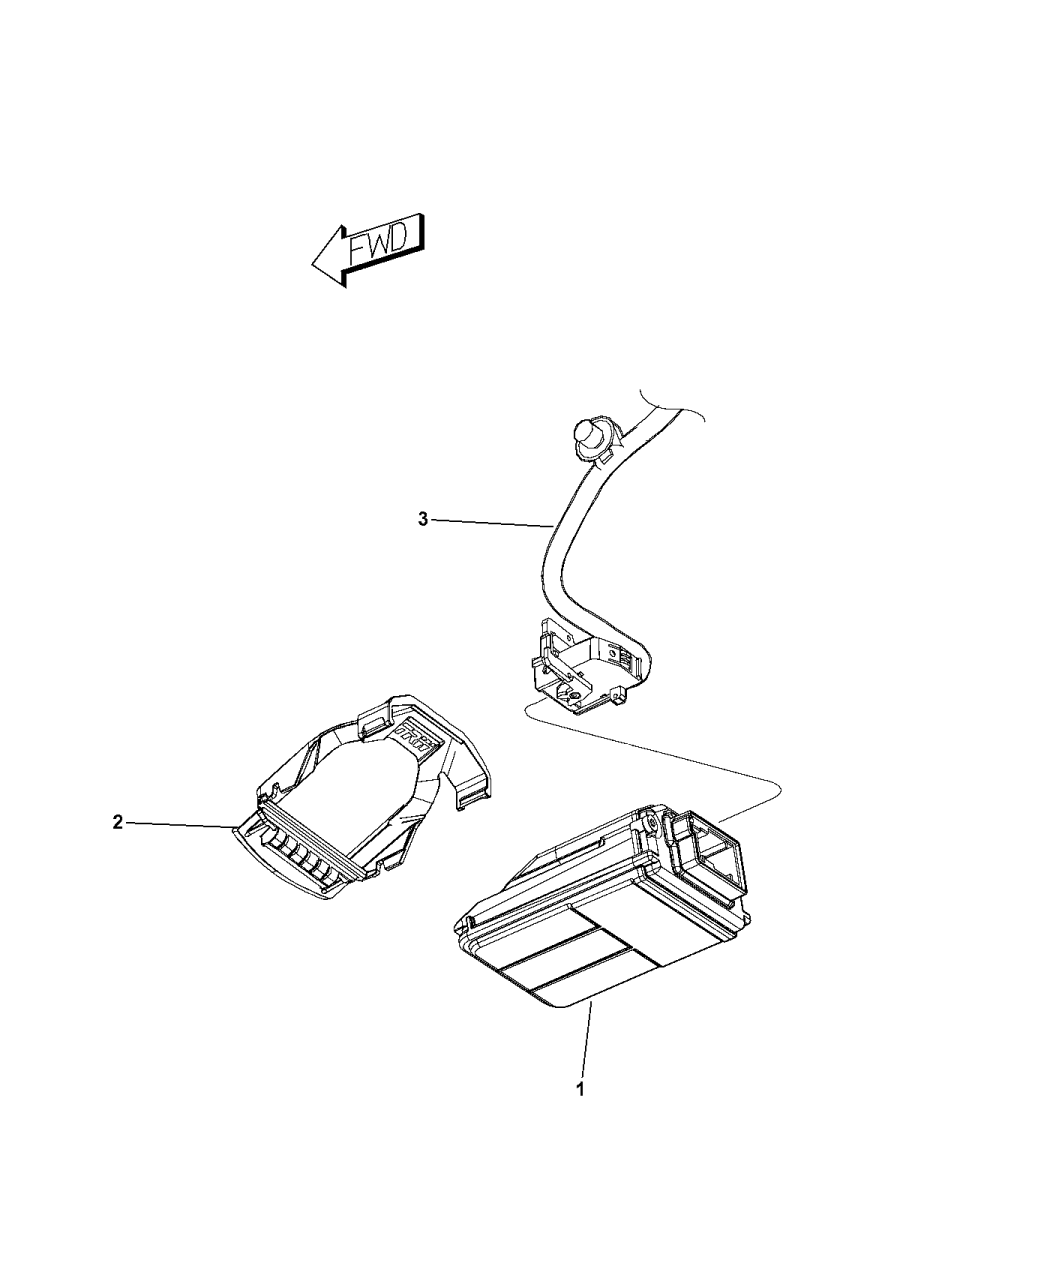 2014 Jeep Grand Cherokee Front Camera System Mopar Parts Giant 2013 Wrangler Engine Electrical Diagram